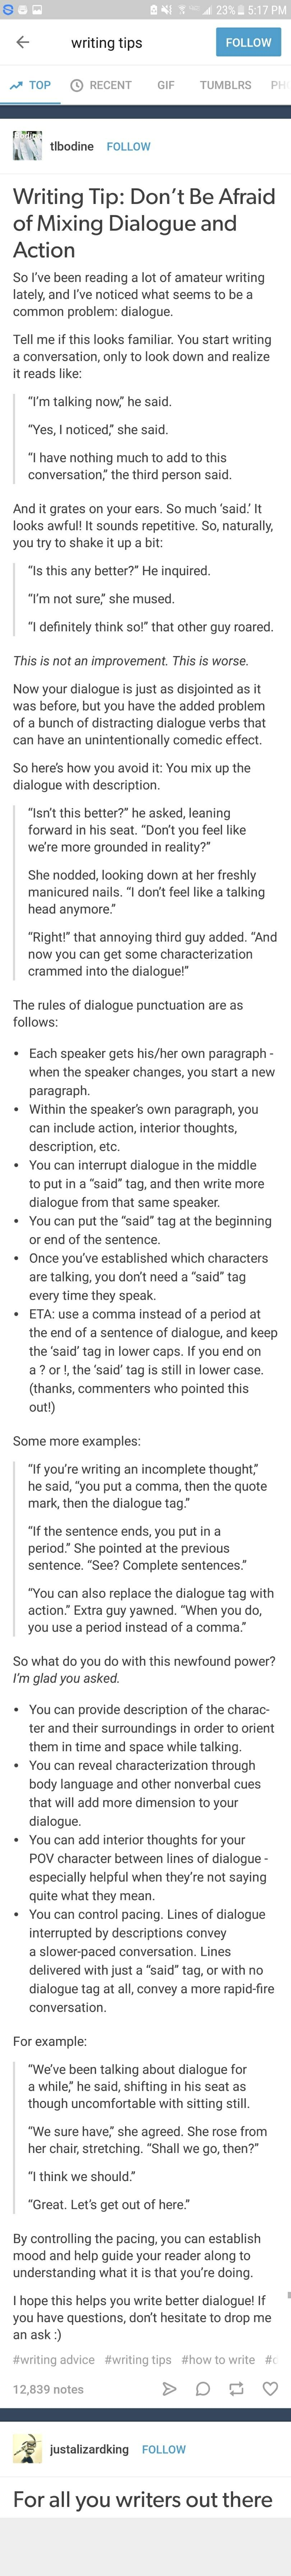 dialogue writing examples between two friends